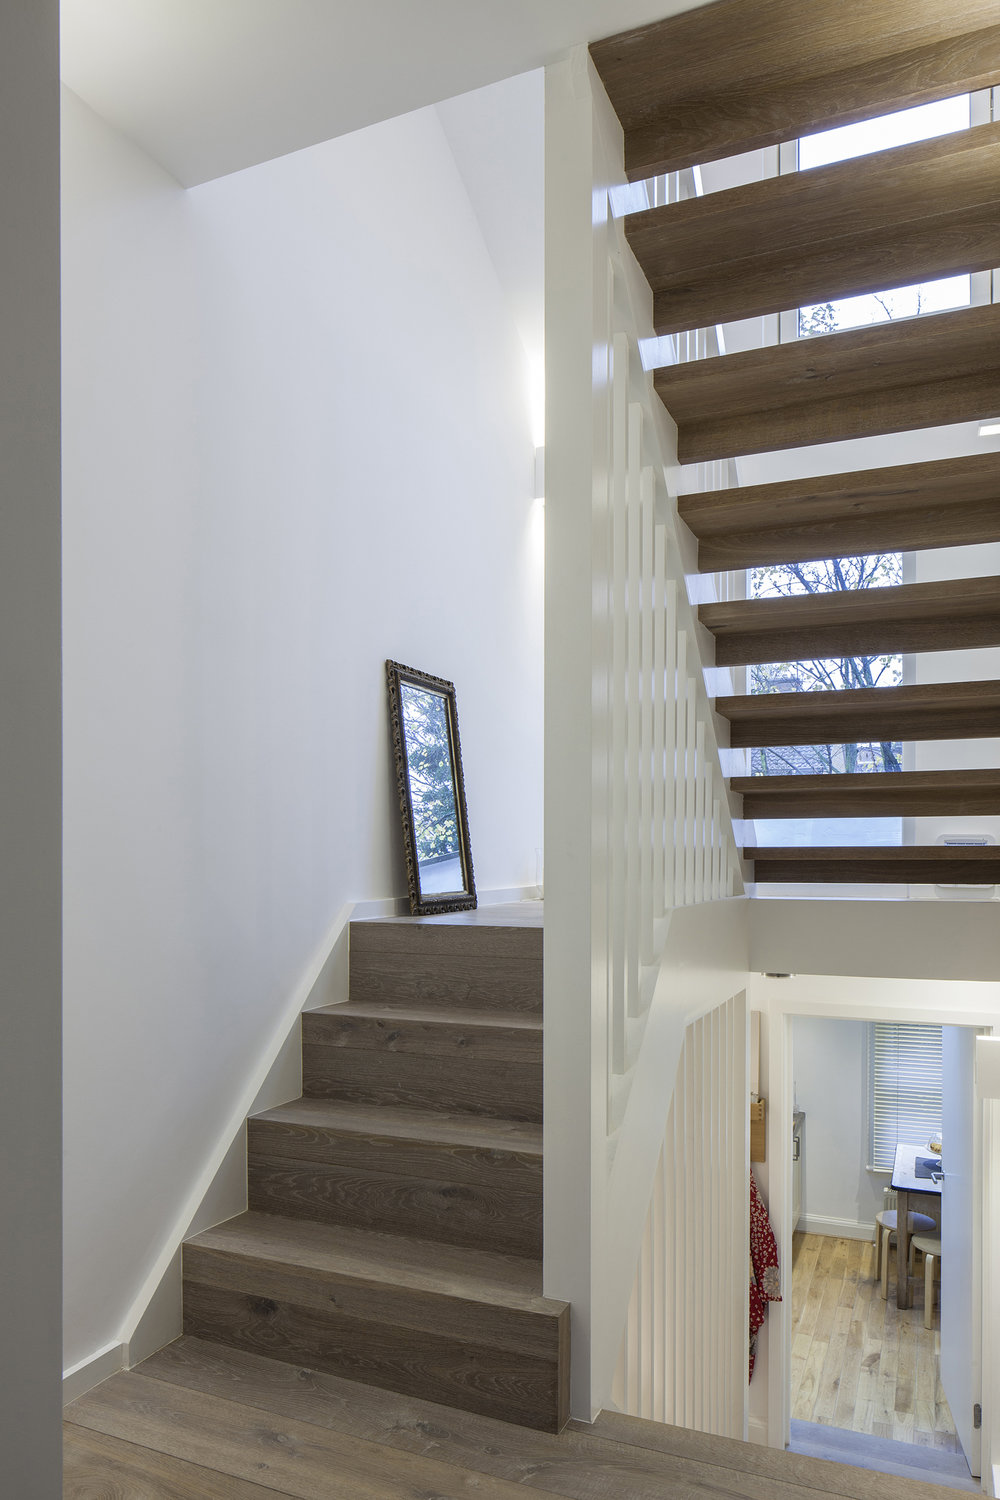 Bespoke Stairwell at Reighton Road